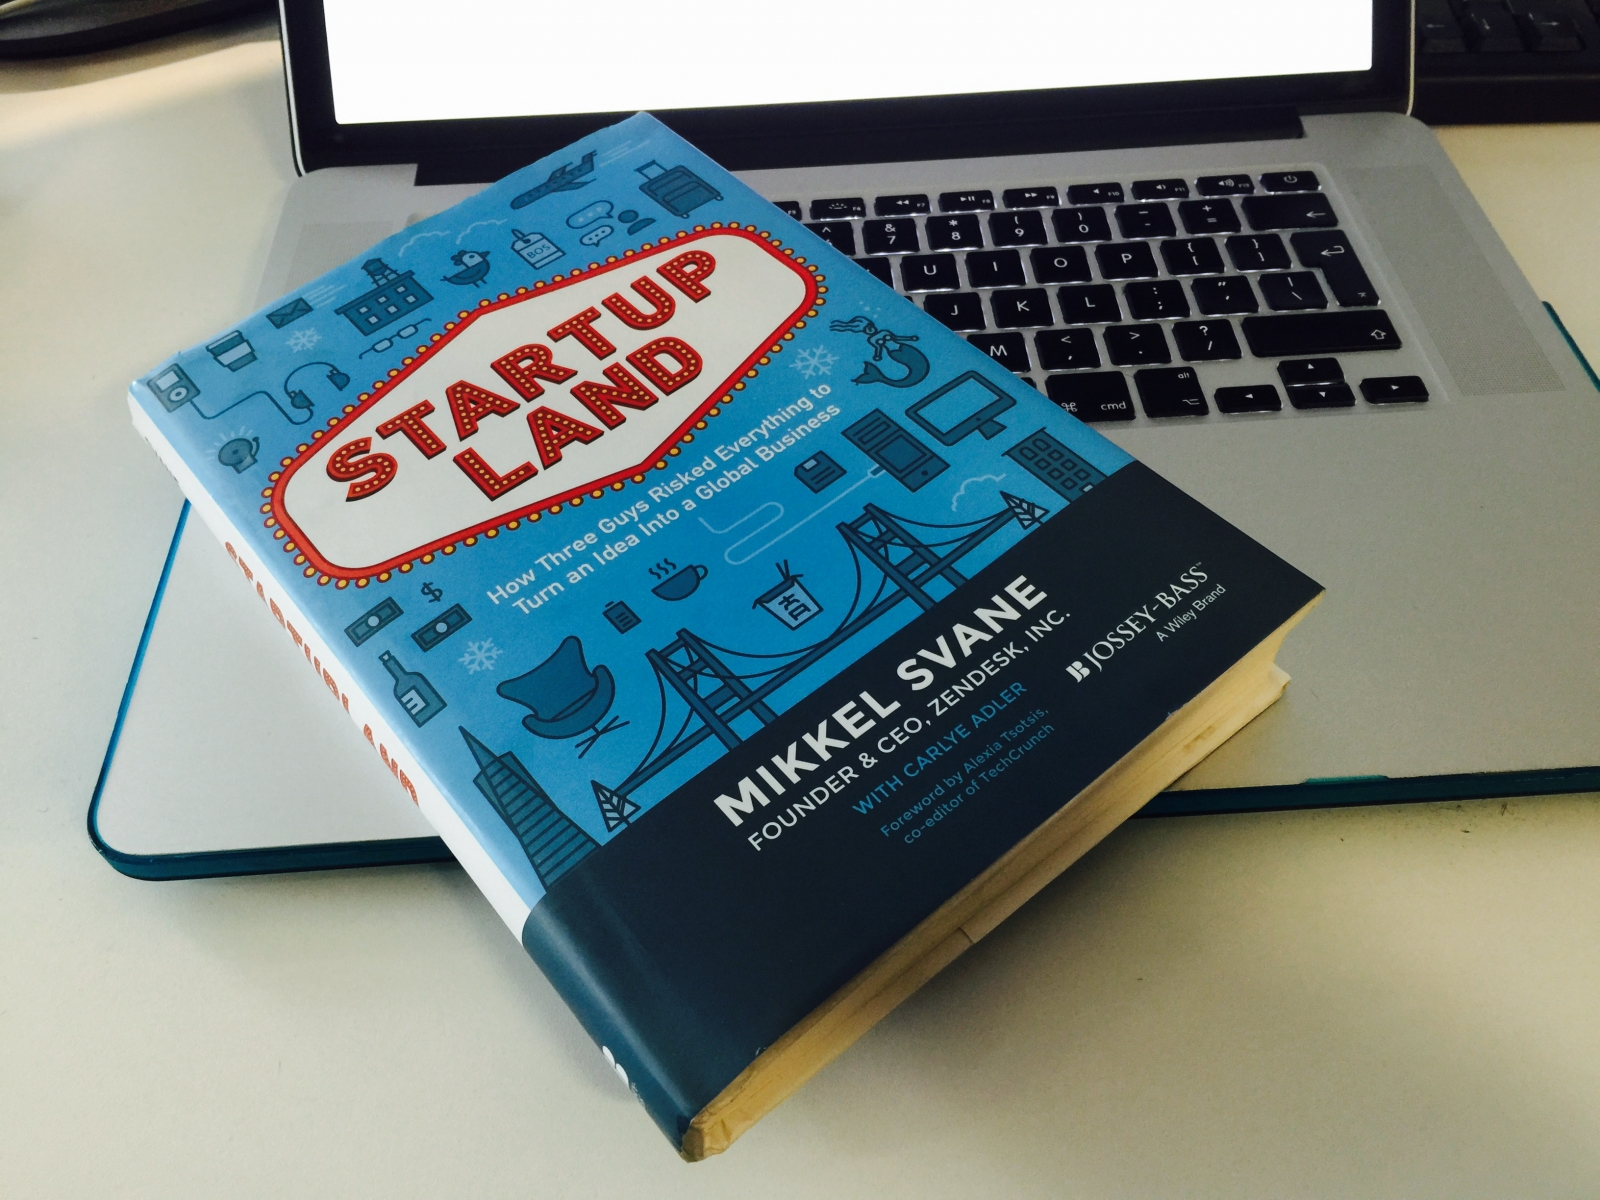 Startupland Review - Mikkel Svane's account of growing Zendesk